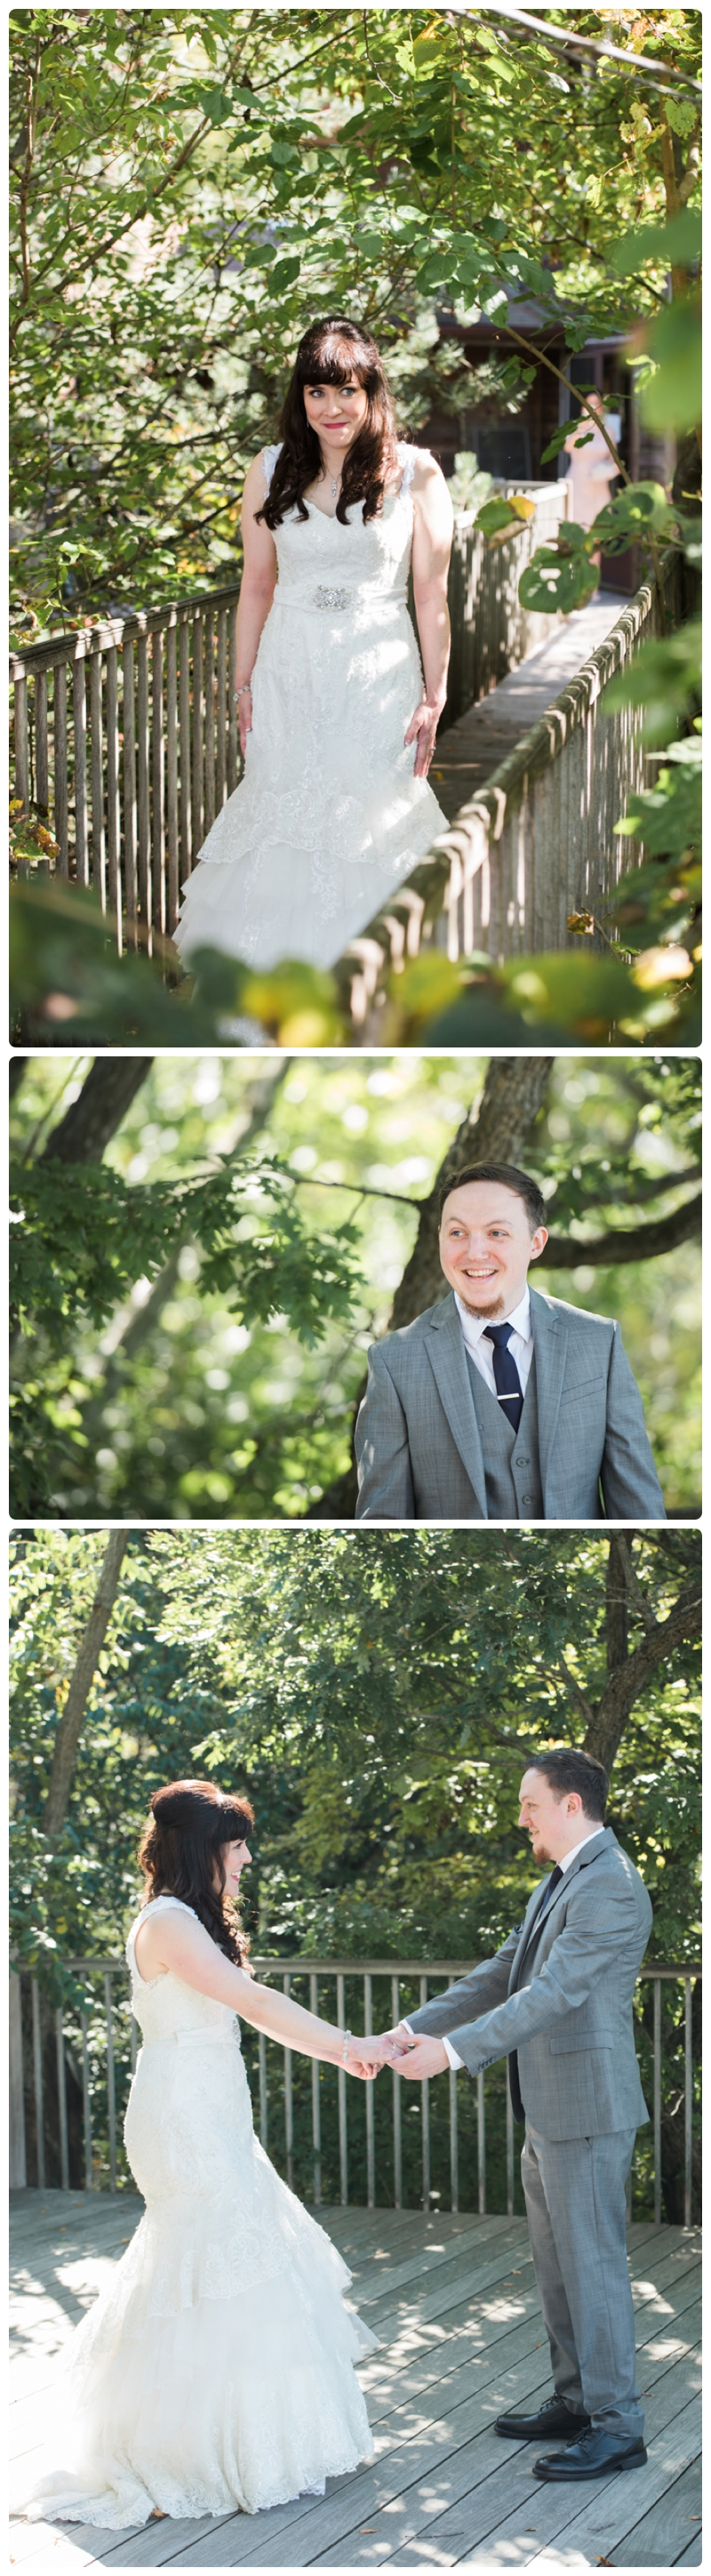 Backyard forest wedding in the Chicago suburbs by Rachael Foster Photography_0009.jpg